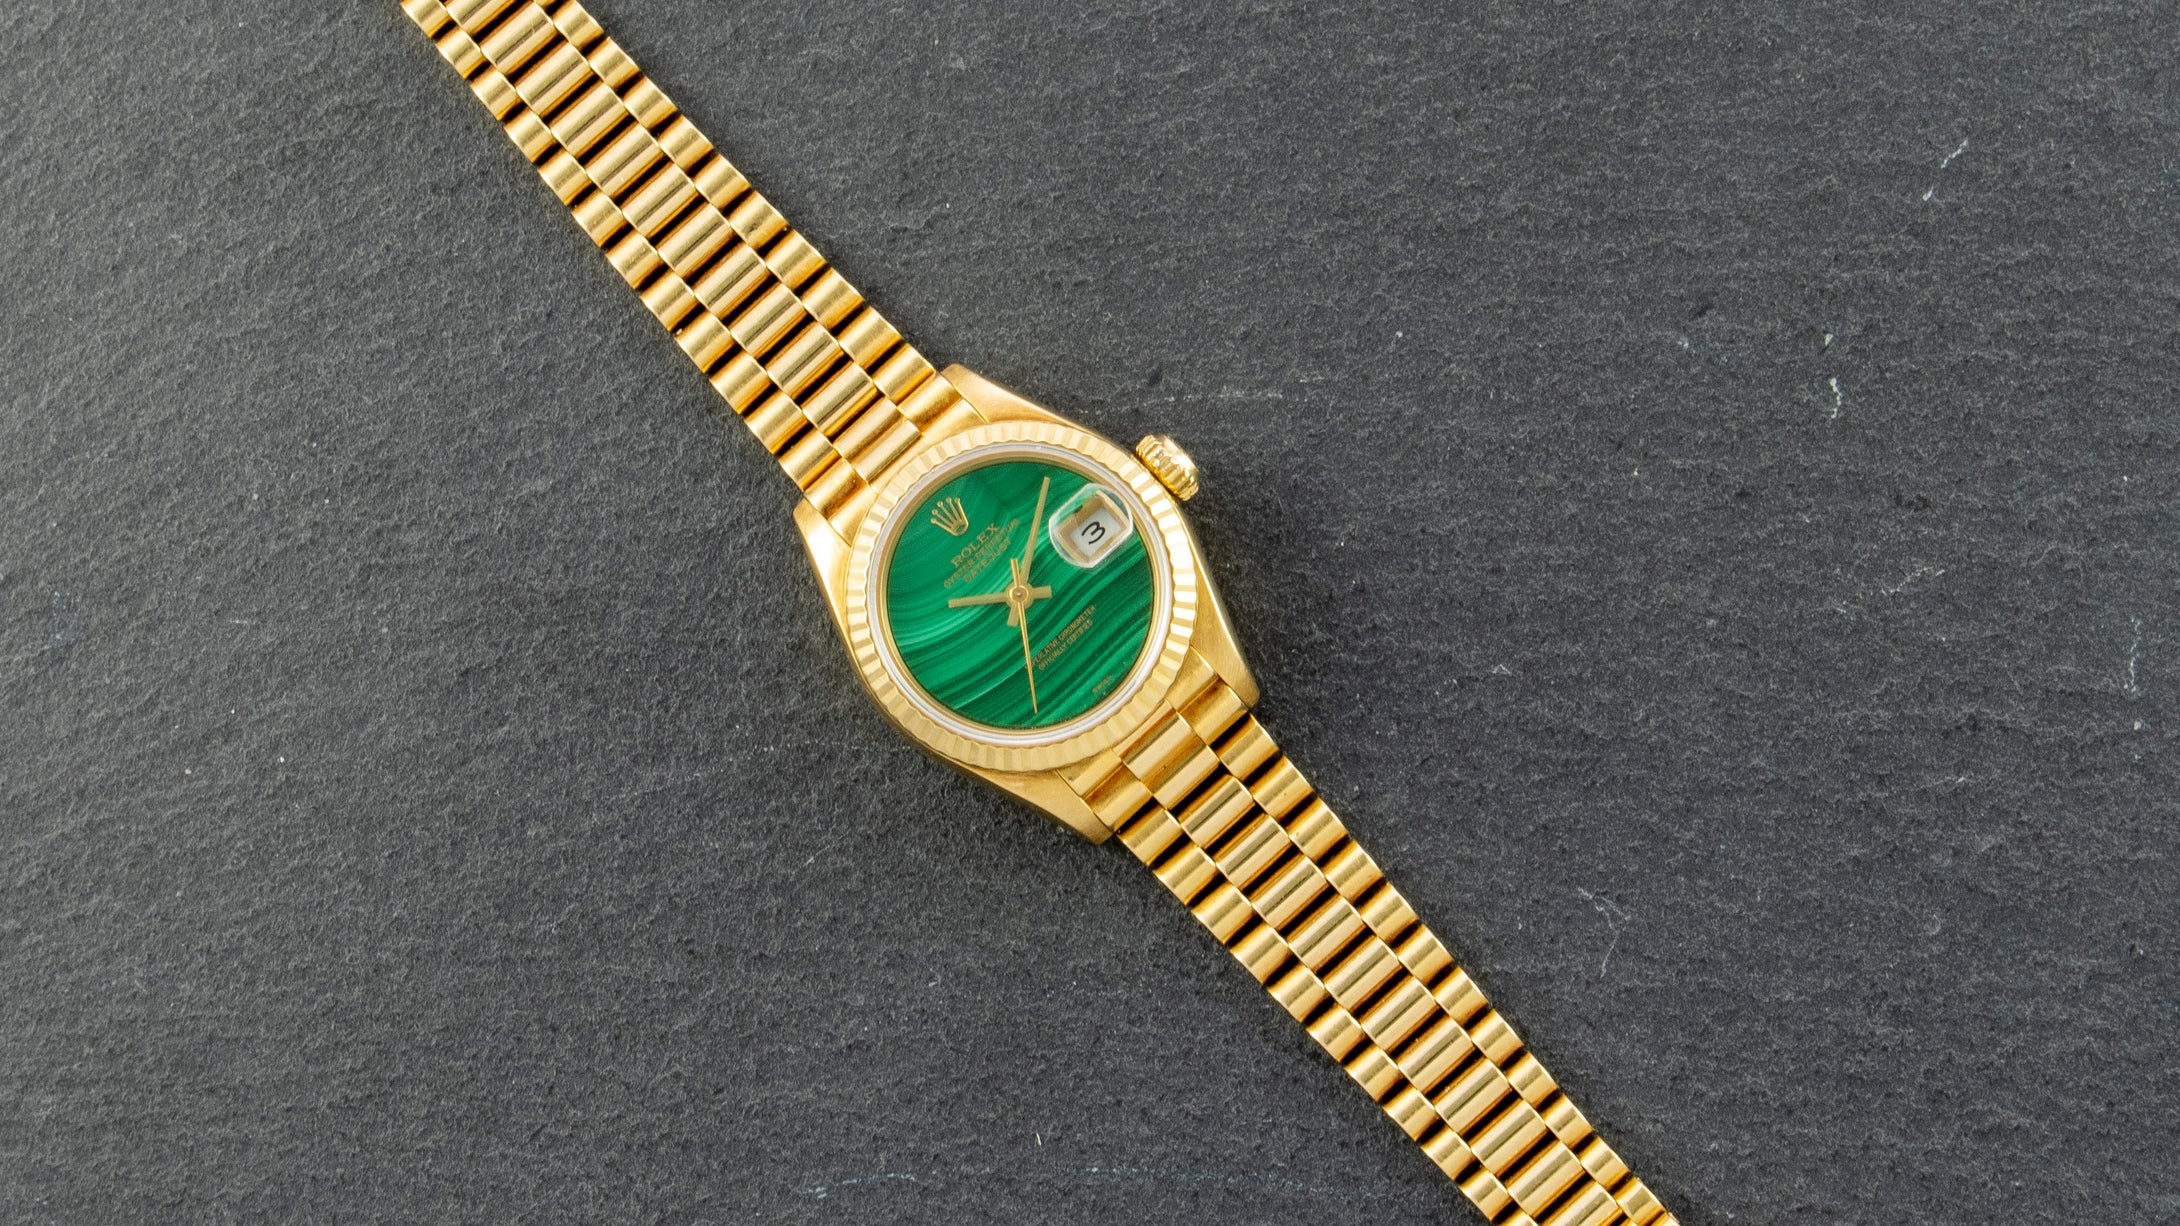 Rolex 18K Yellow Gold Ladies Oyster Perpetual Datejust Vintage Watch with Factory Malachite Dial | Veralet